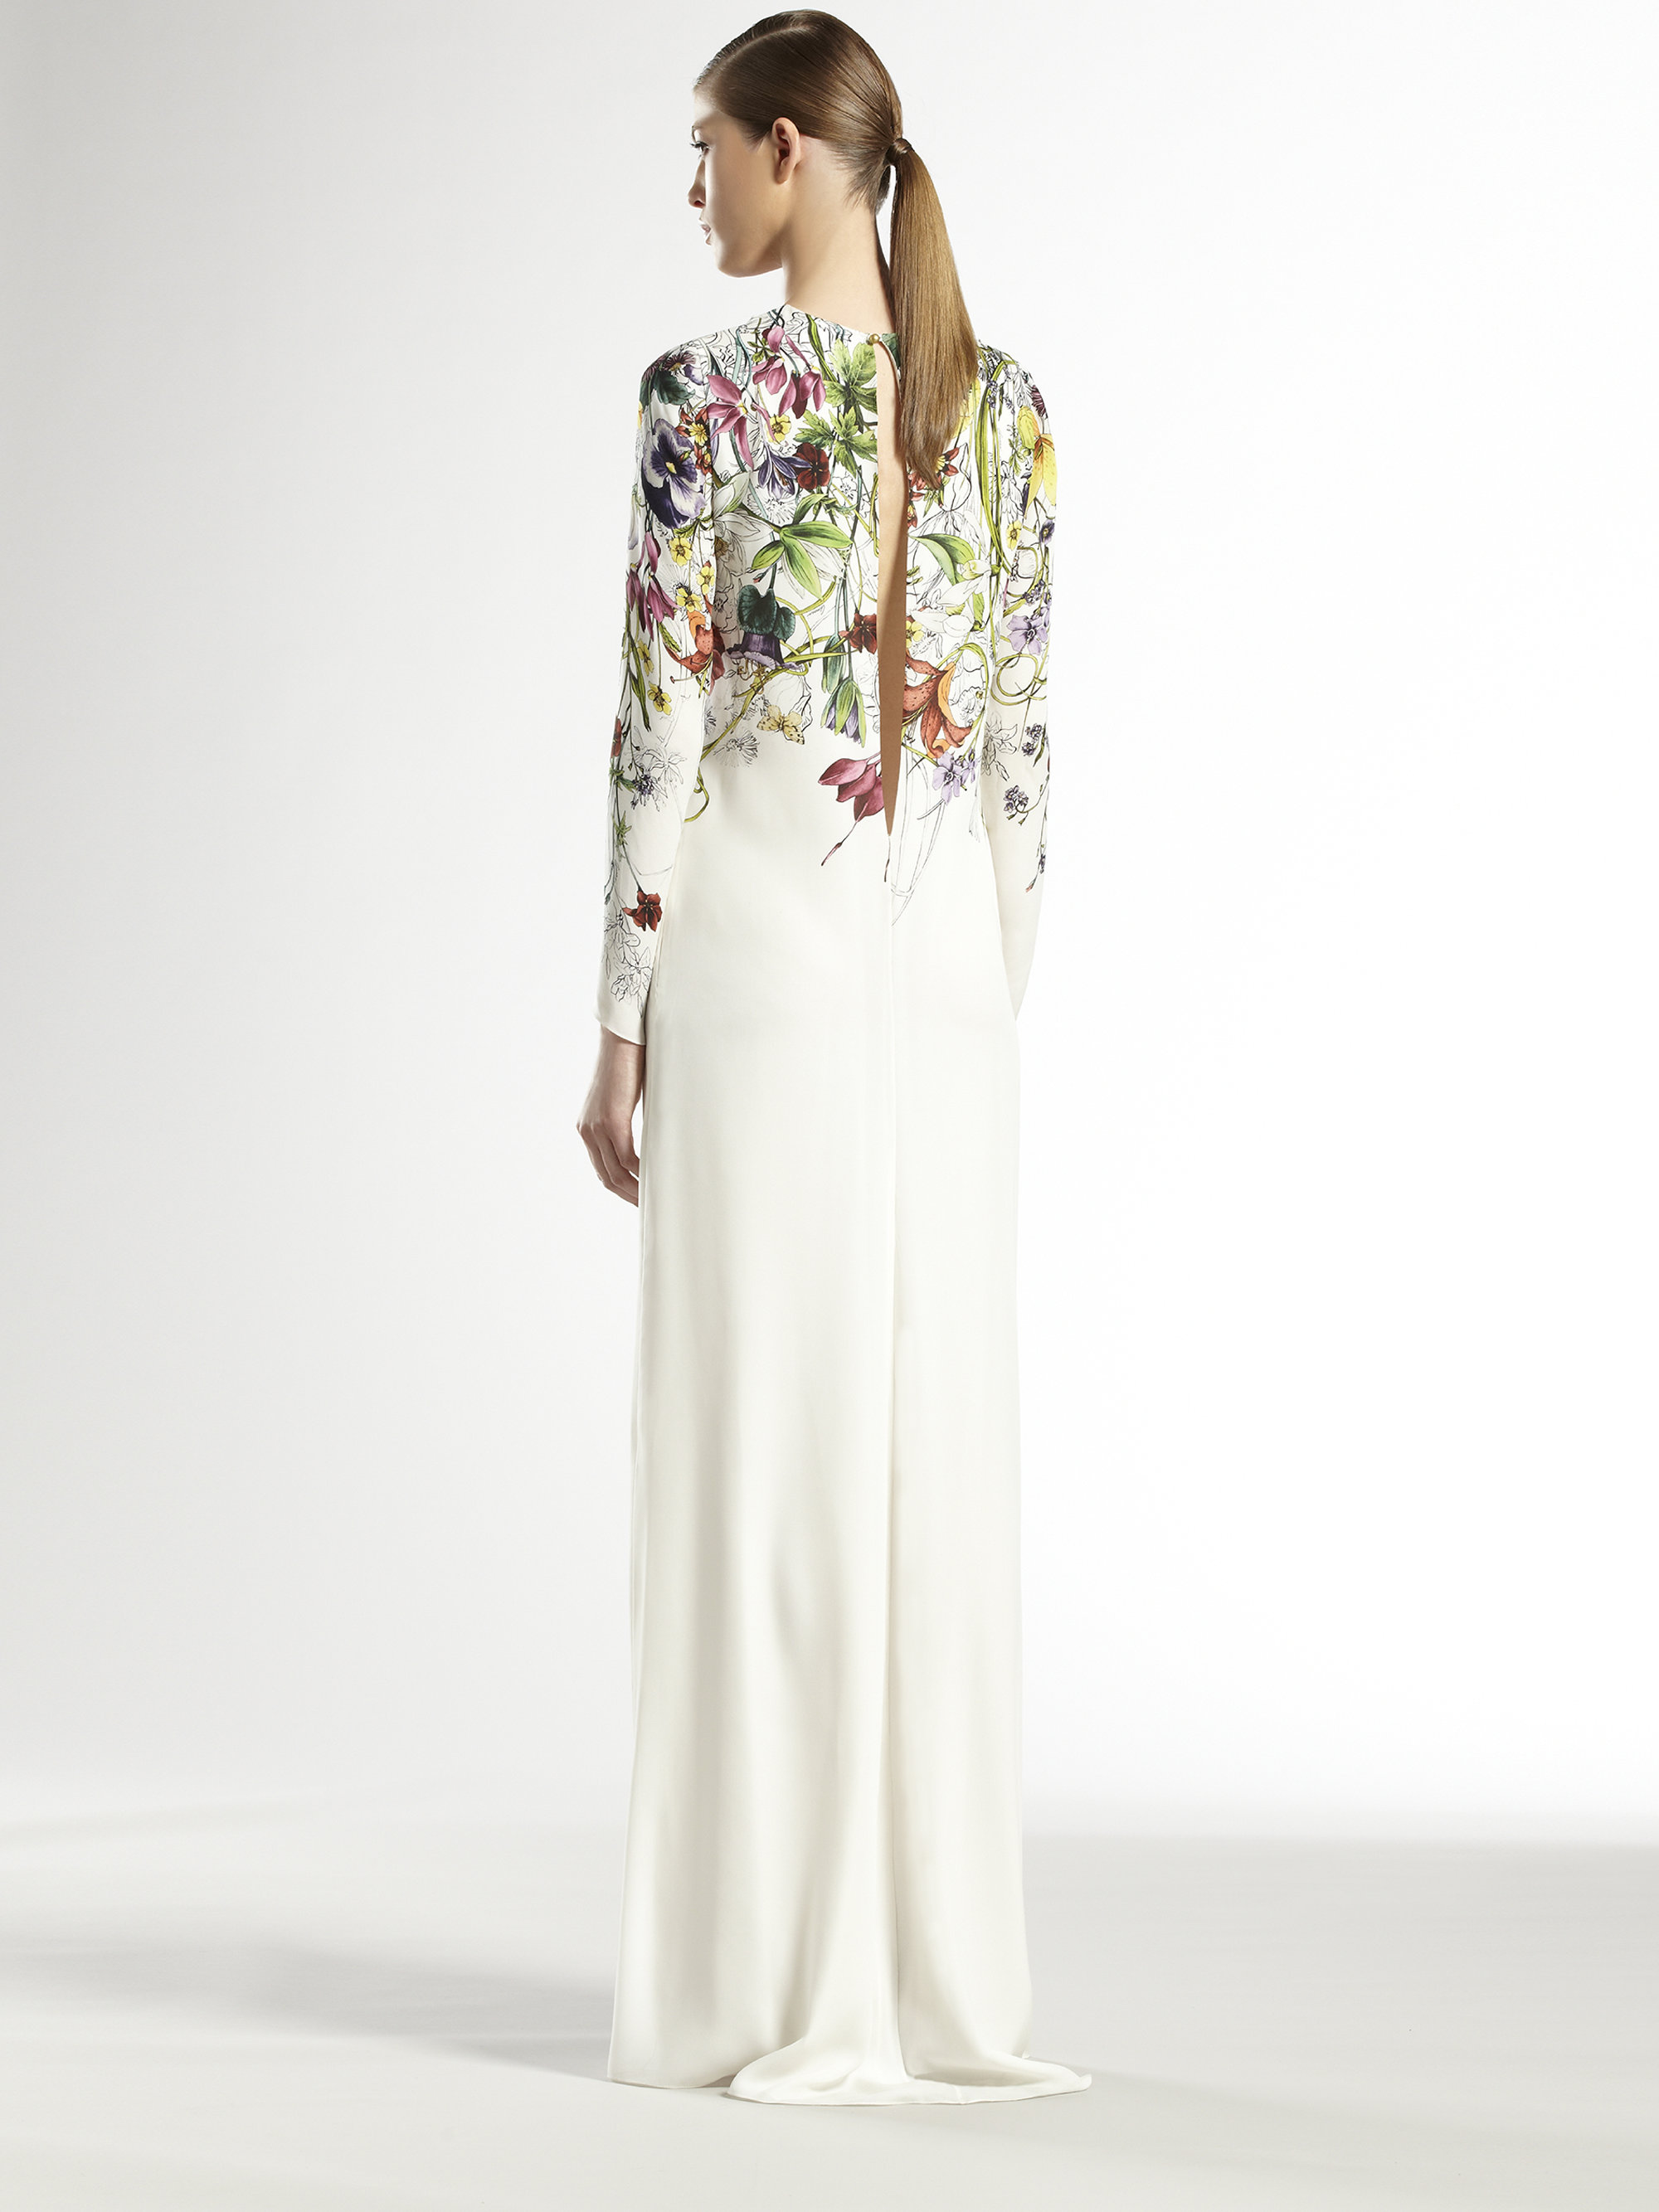 Lyst - Gucci Silk Flora Infinity Gown in White